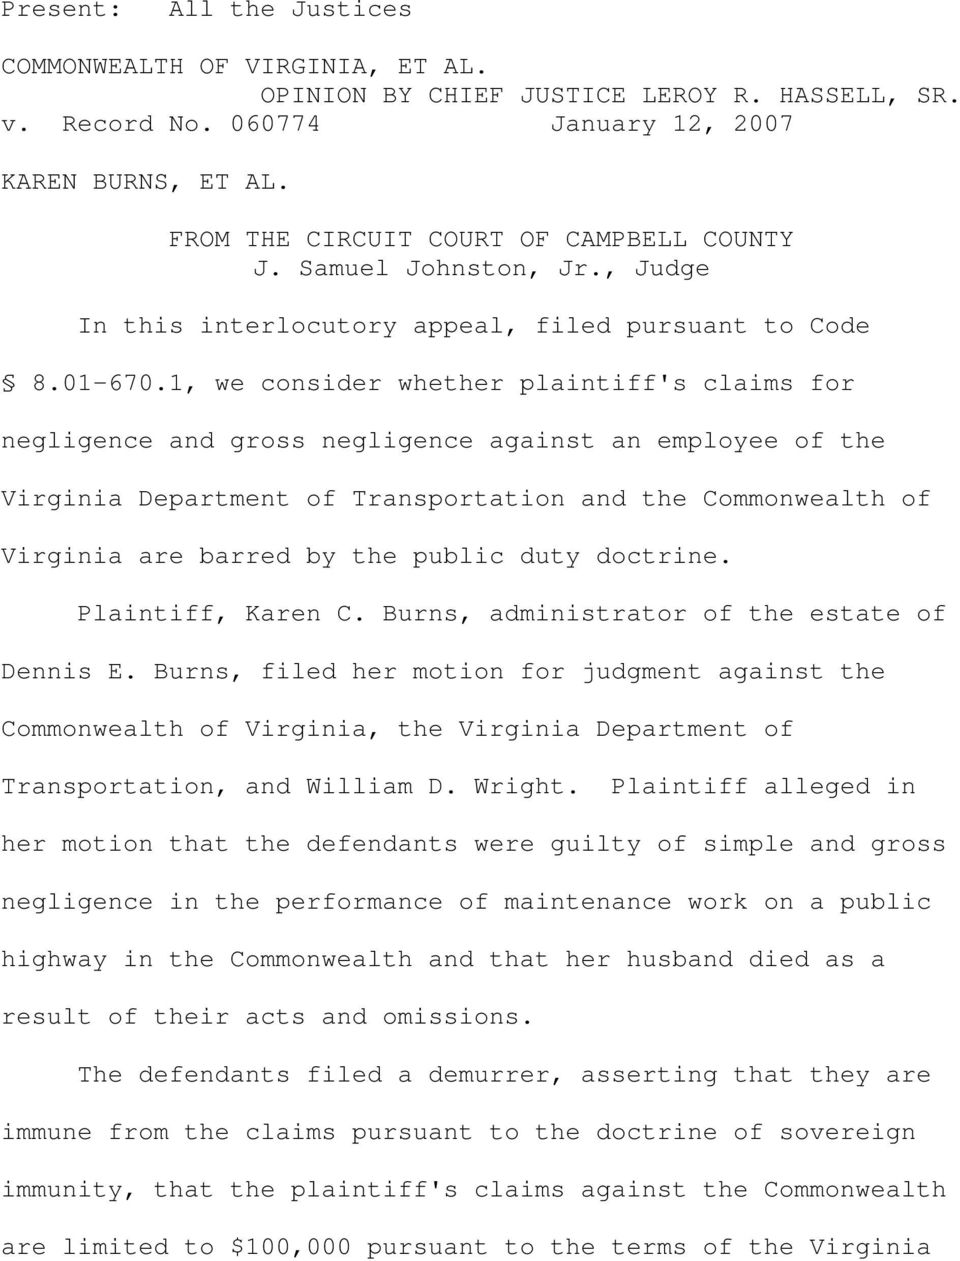 1, we consider whether plaintiff's claims for negligence and gross negligence against an employee of the Virginia Department of Transportation and the Commonwealth of Virginia are barred by the